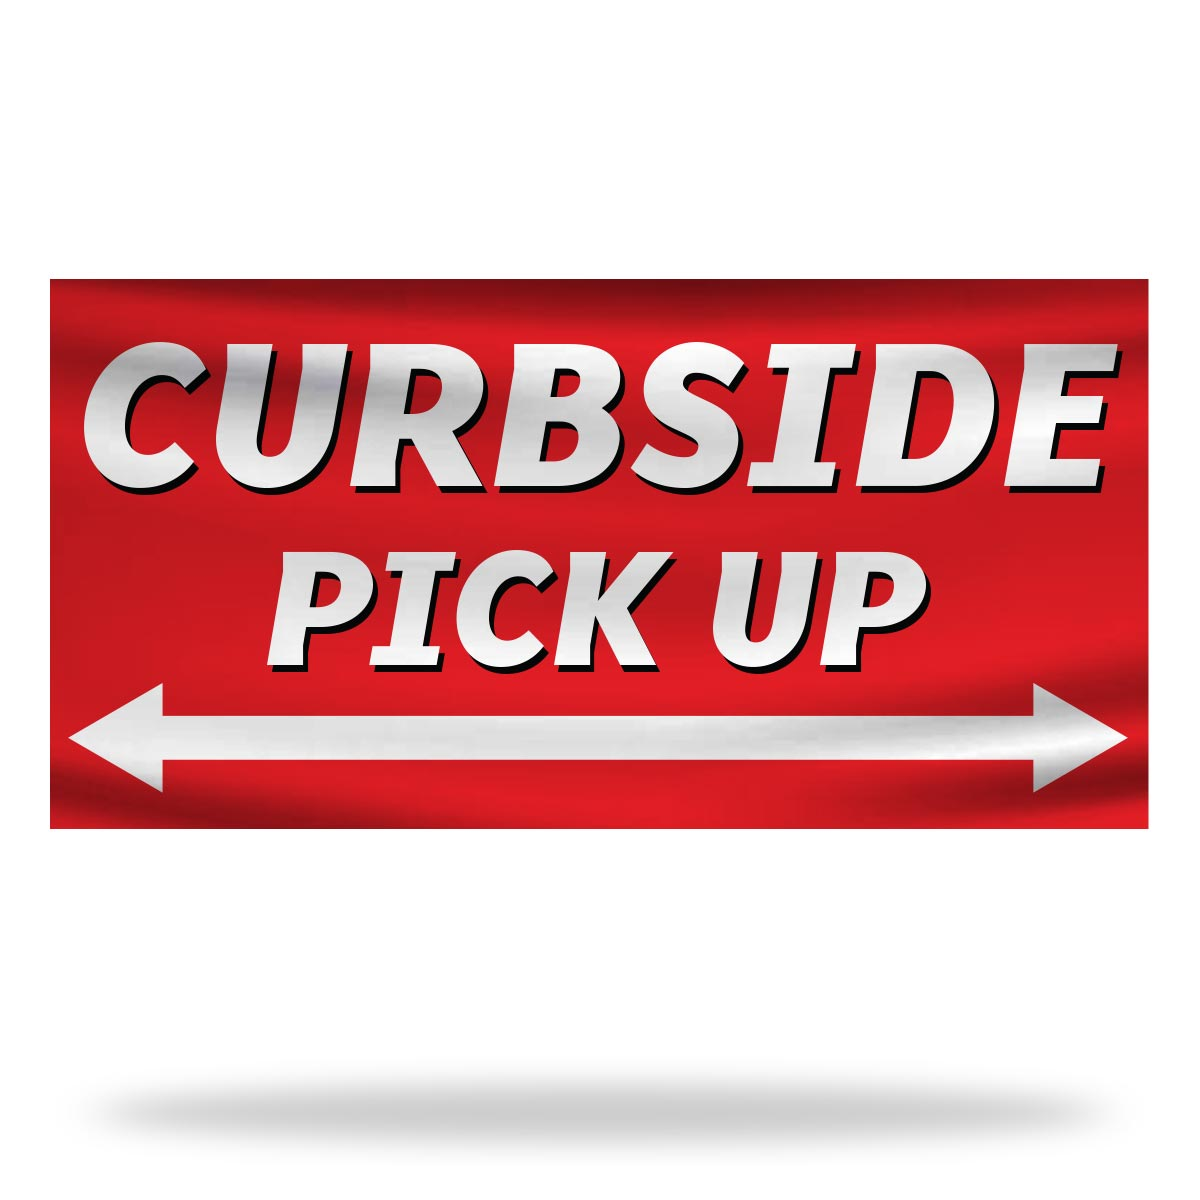 Curbside Pickup Flags & Banners Design 01